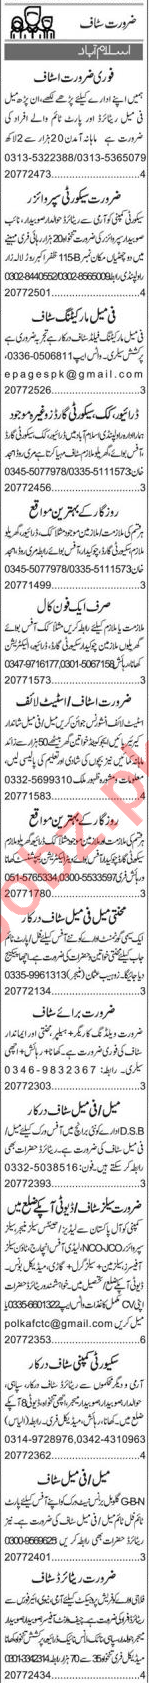 Client Relation Officer & Imports Executive Jobs 2020